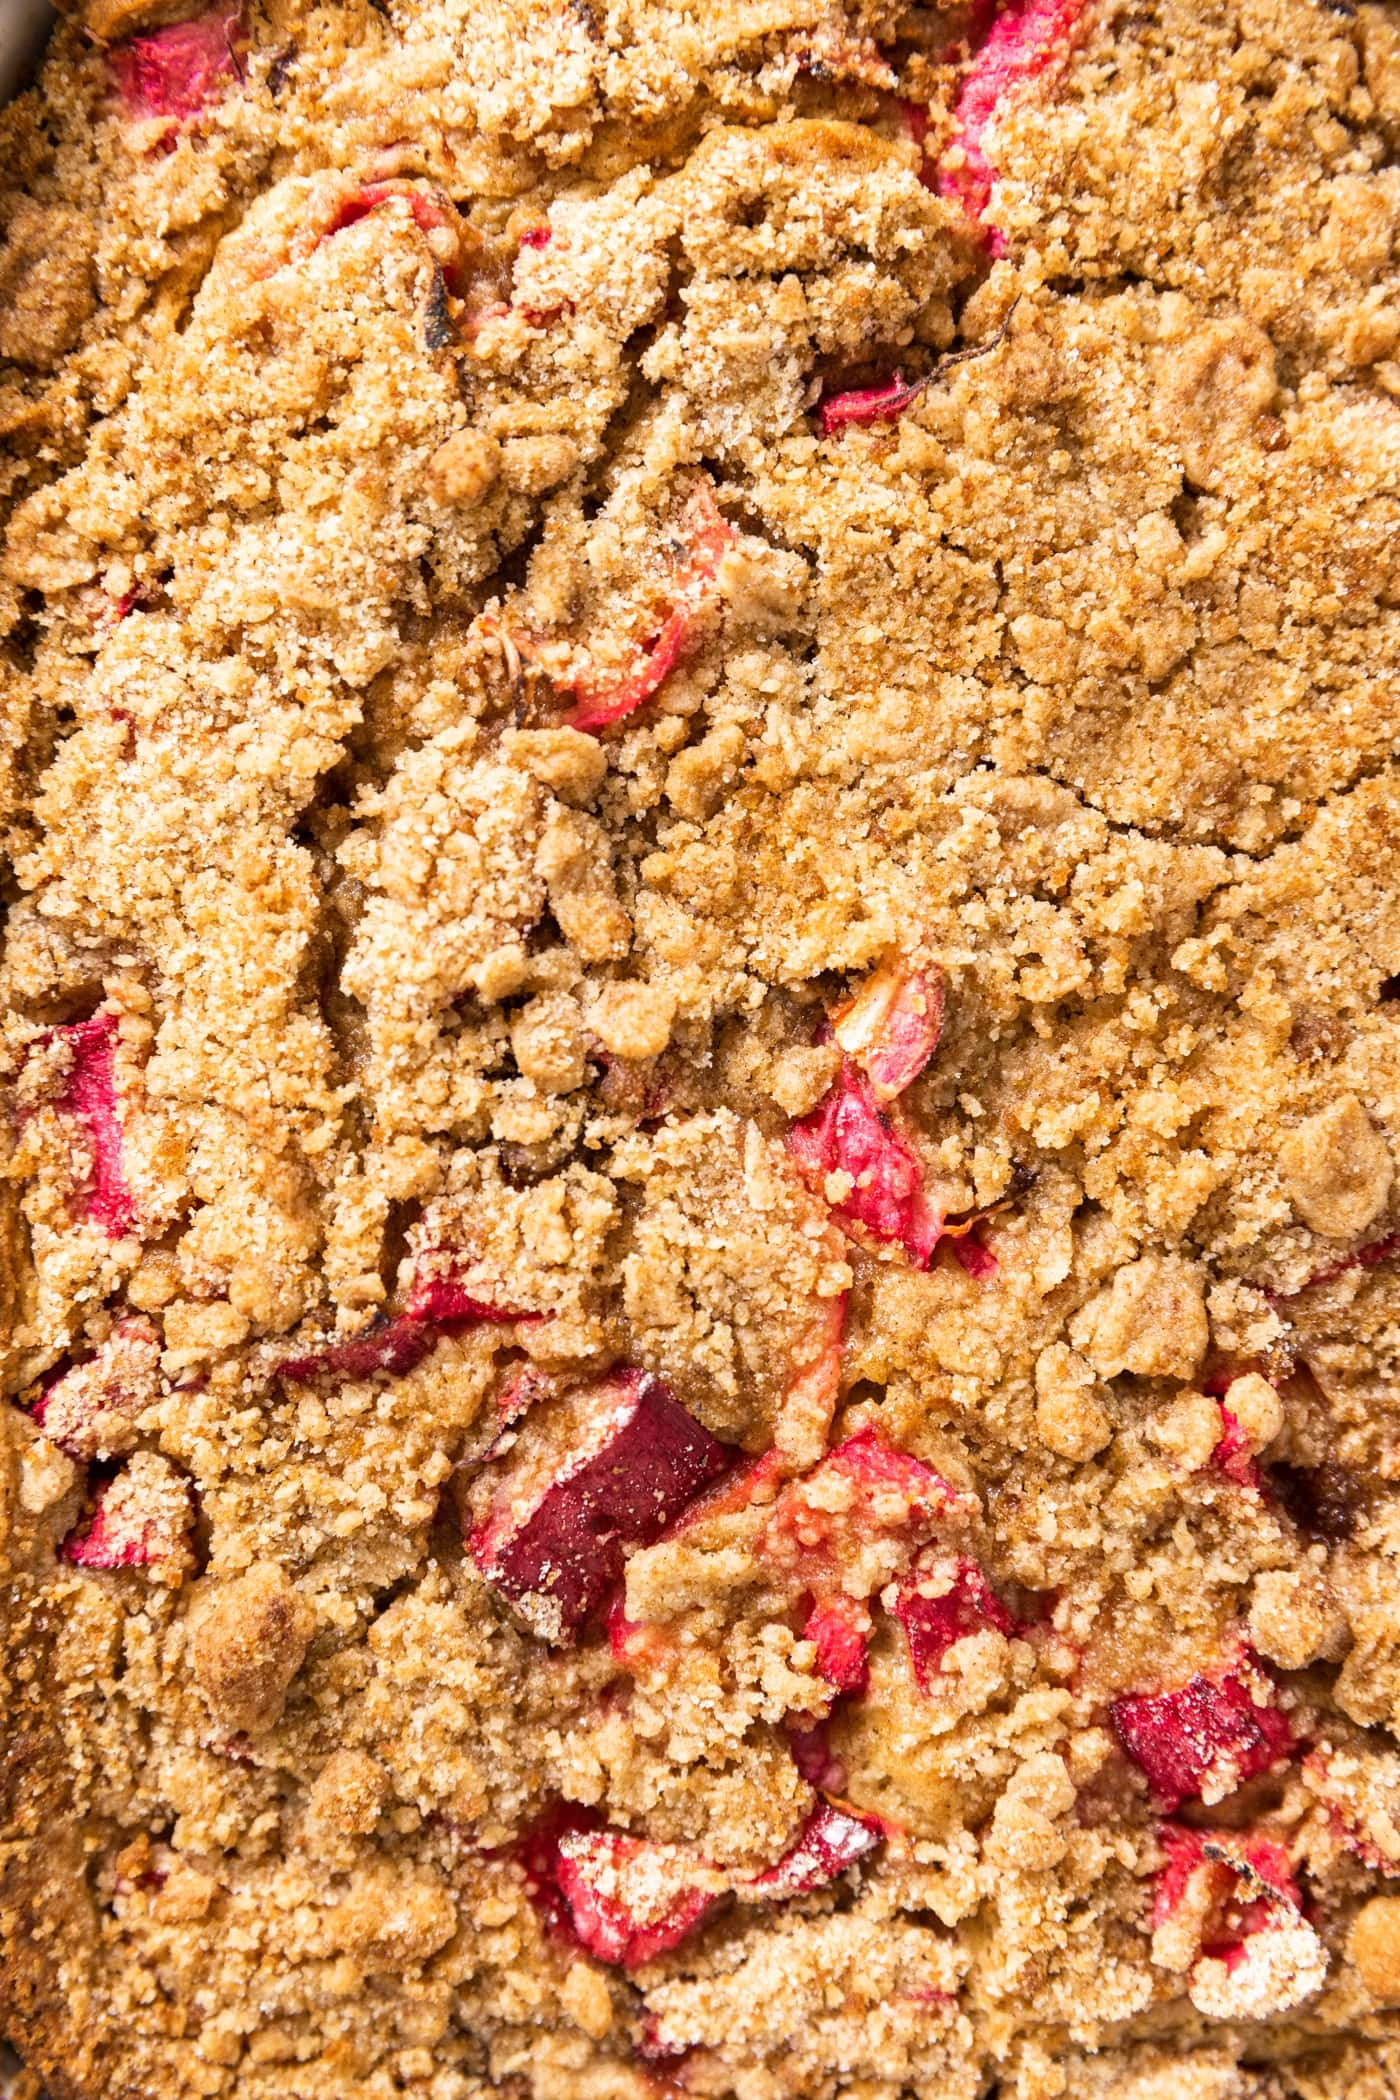 Close up top down view of coffee cake with streusel topping dotted with pieces of chopped rhubarb